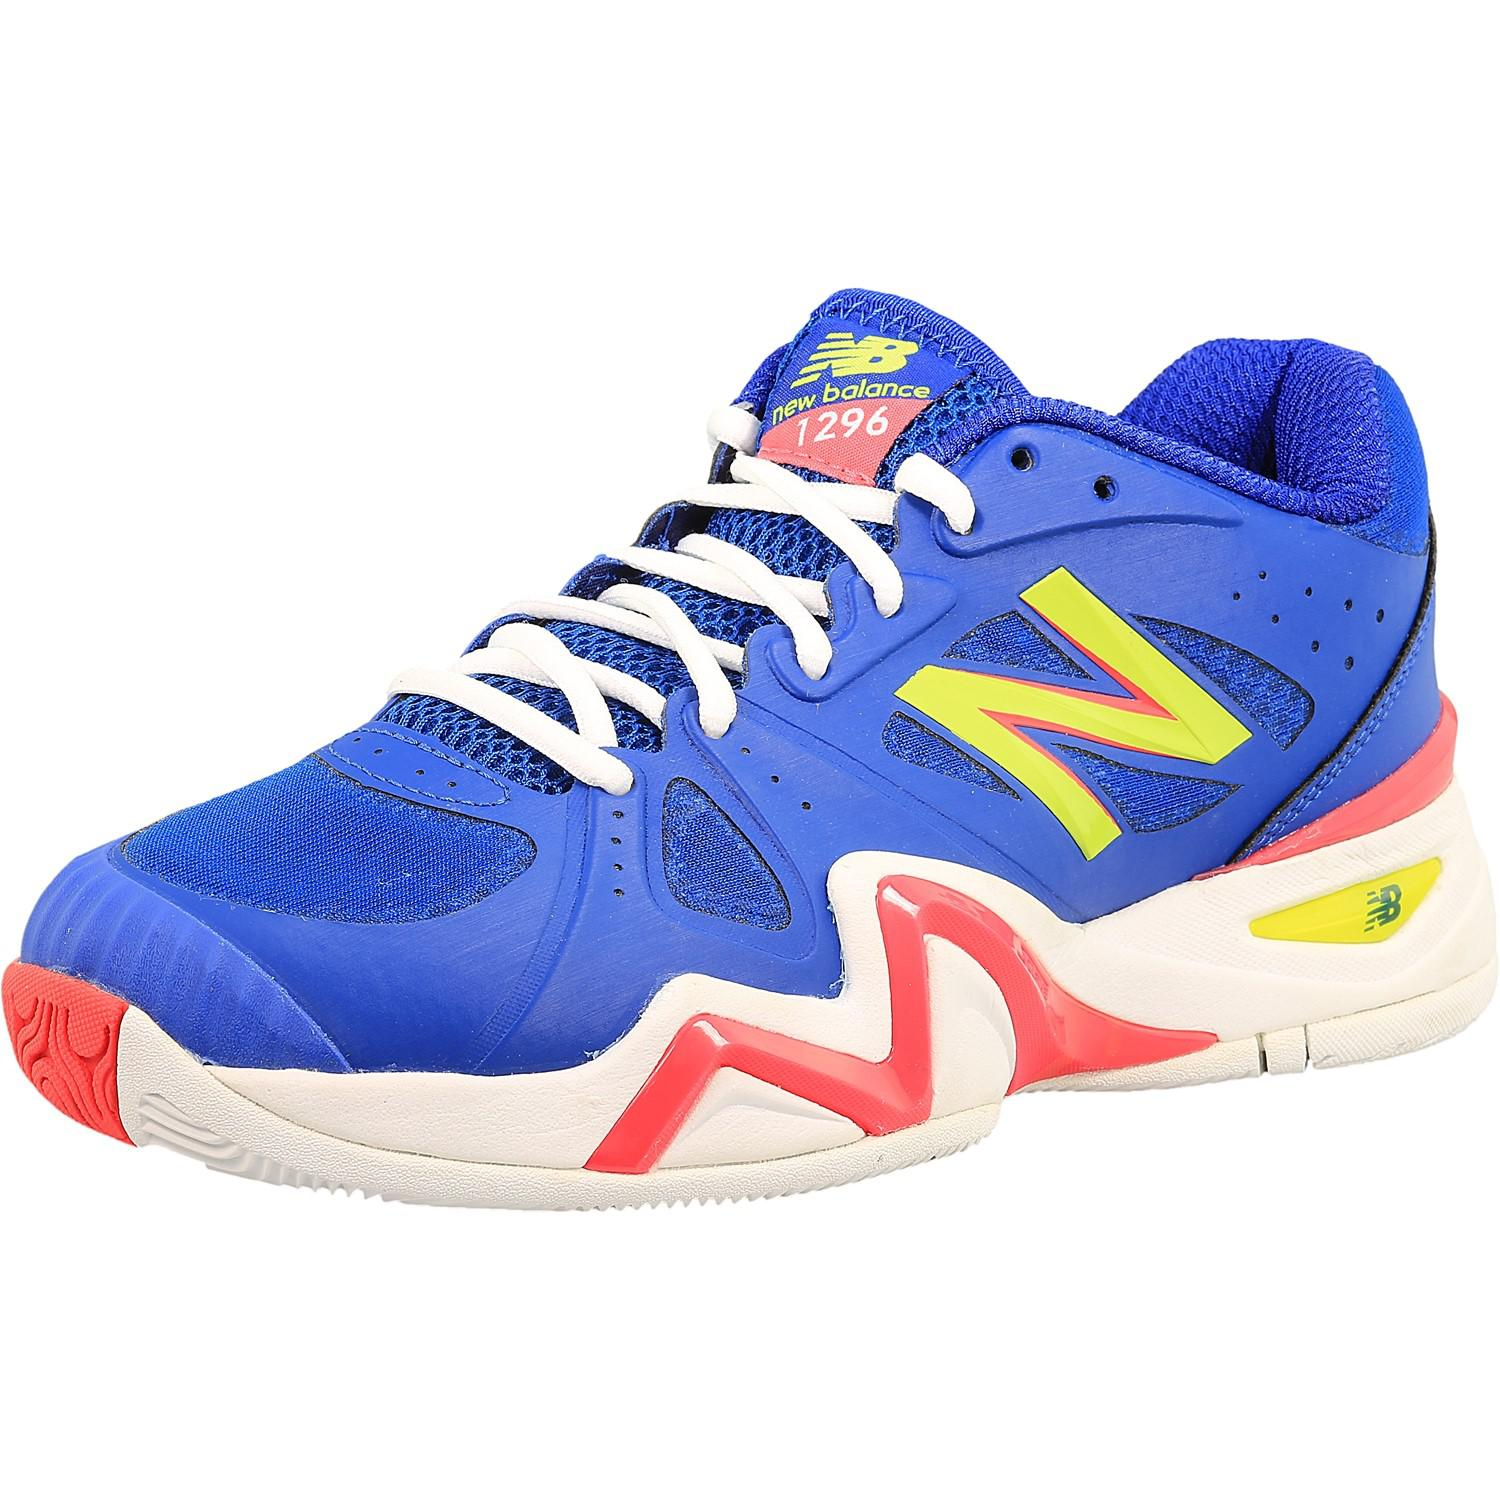 Womens Shoes New Balance WC1296 Blue